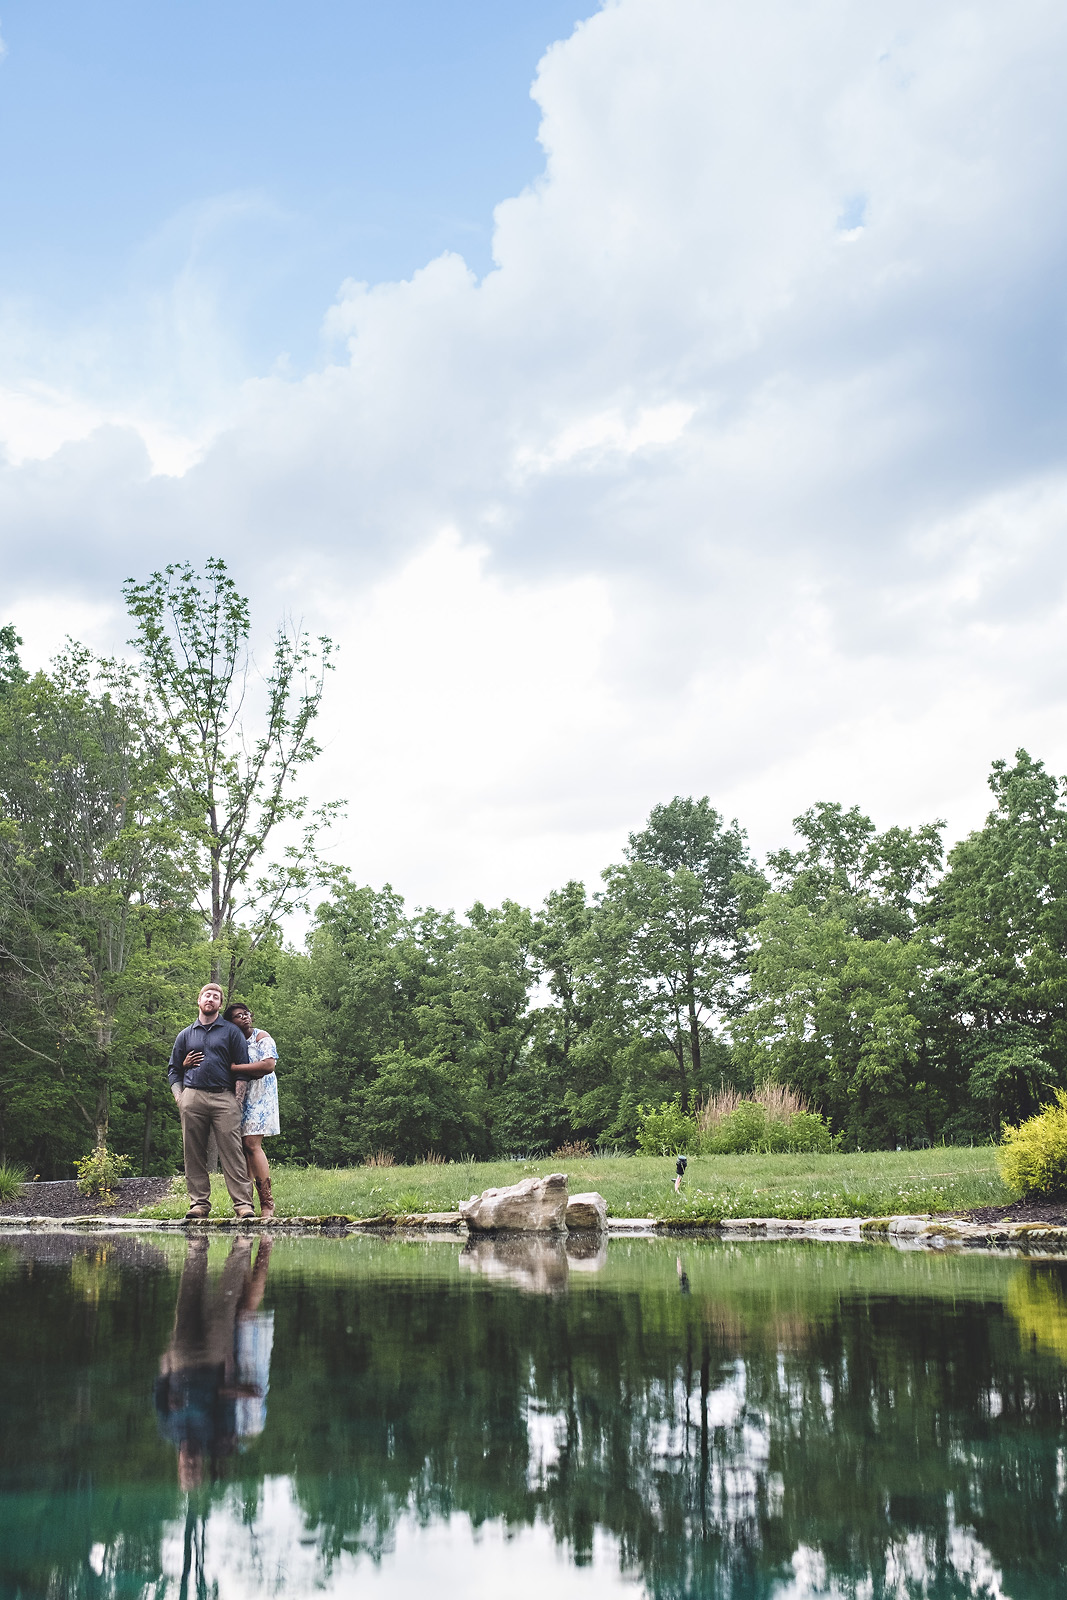 Nick and Lorraine's Stone Creek Lodge Crawfordsville Indiana Engagement Session - www.RHatfieldPhotography.com